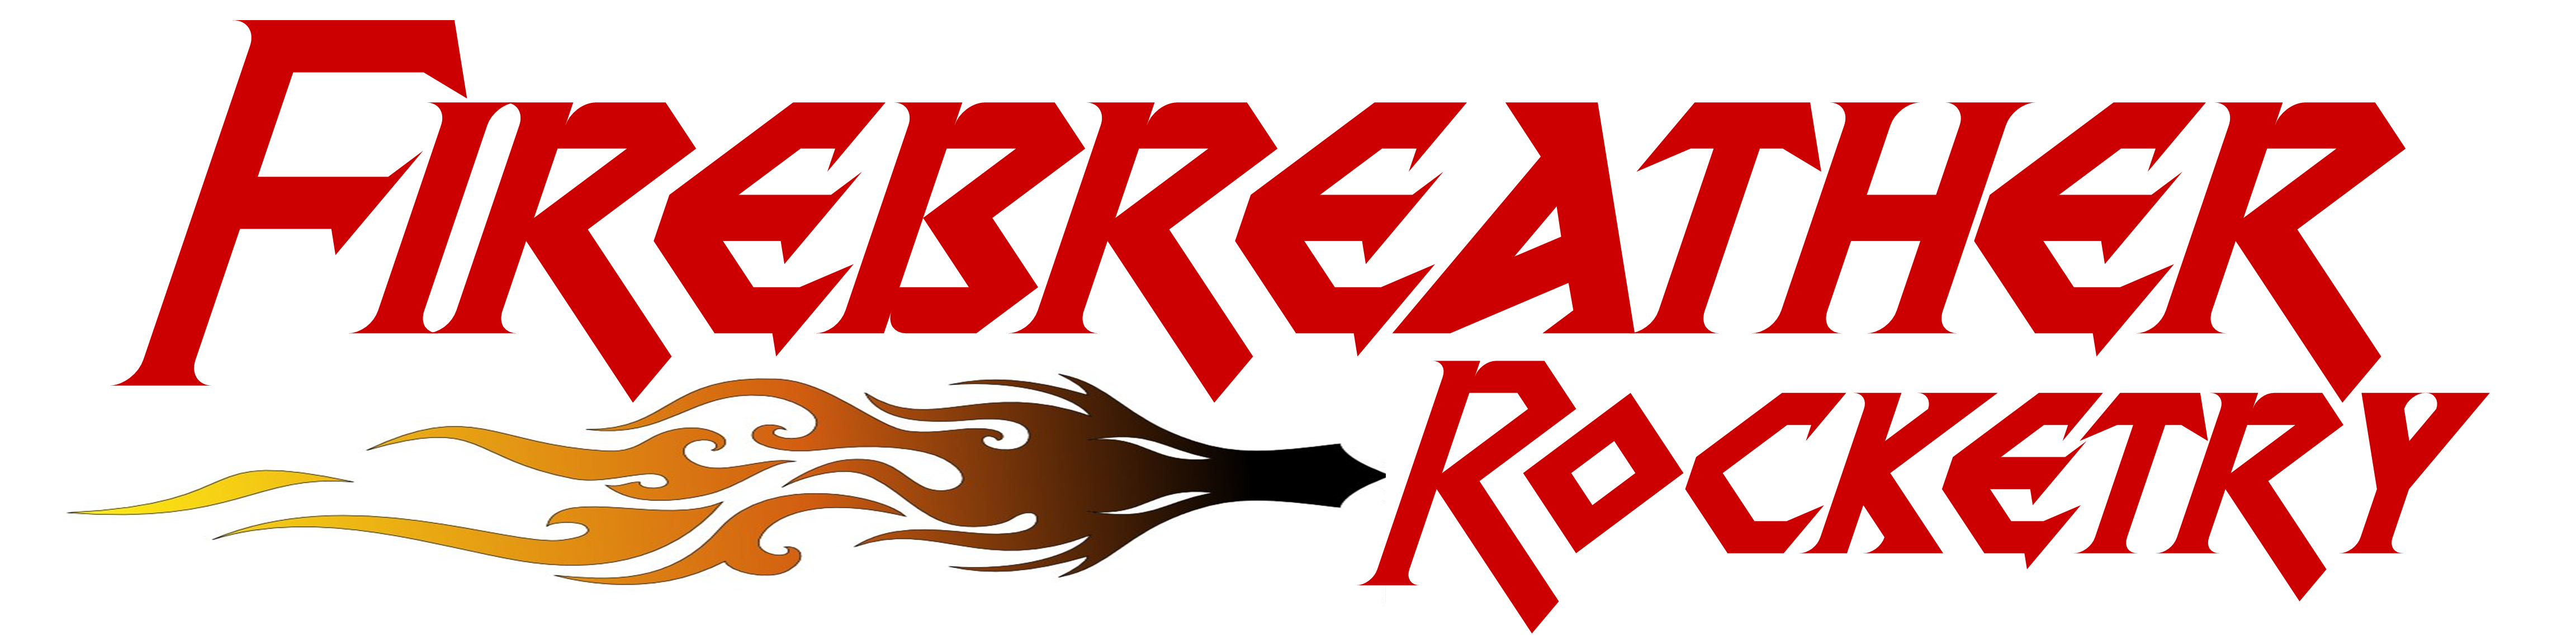 Firebreather Rocketry Logo with Dragon Head J Mills 2018.png